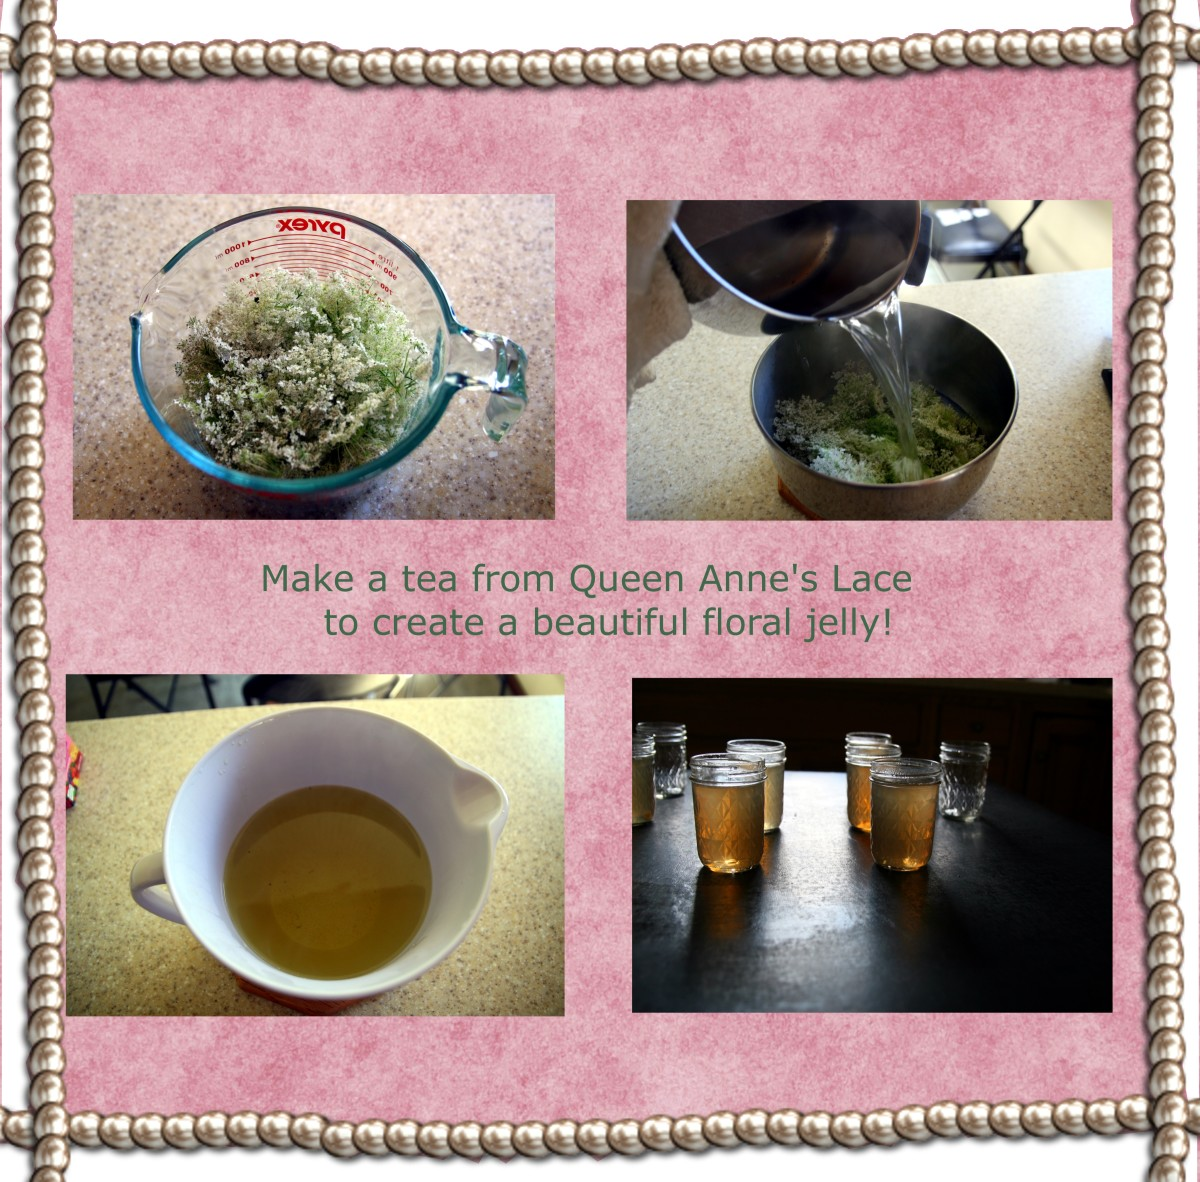 Add boiling water to the flowers to create a tea from Queen Anne's Lace: this tea creates the base for the jelly (click to enlarge).